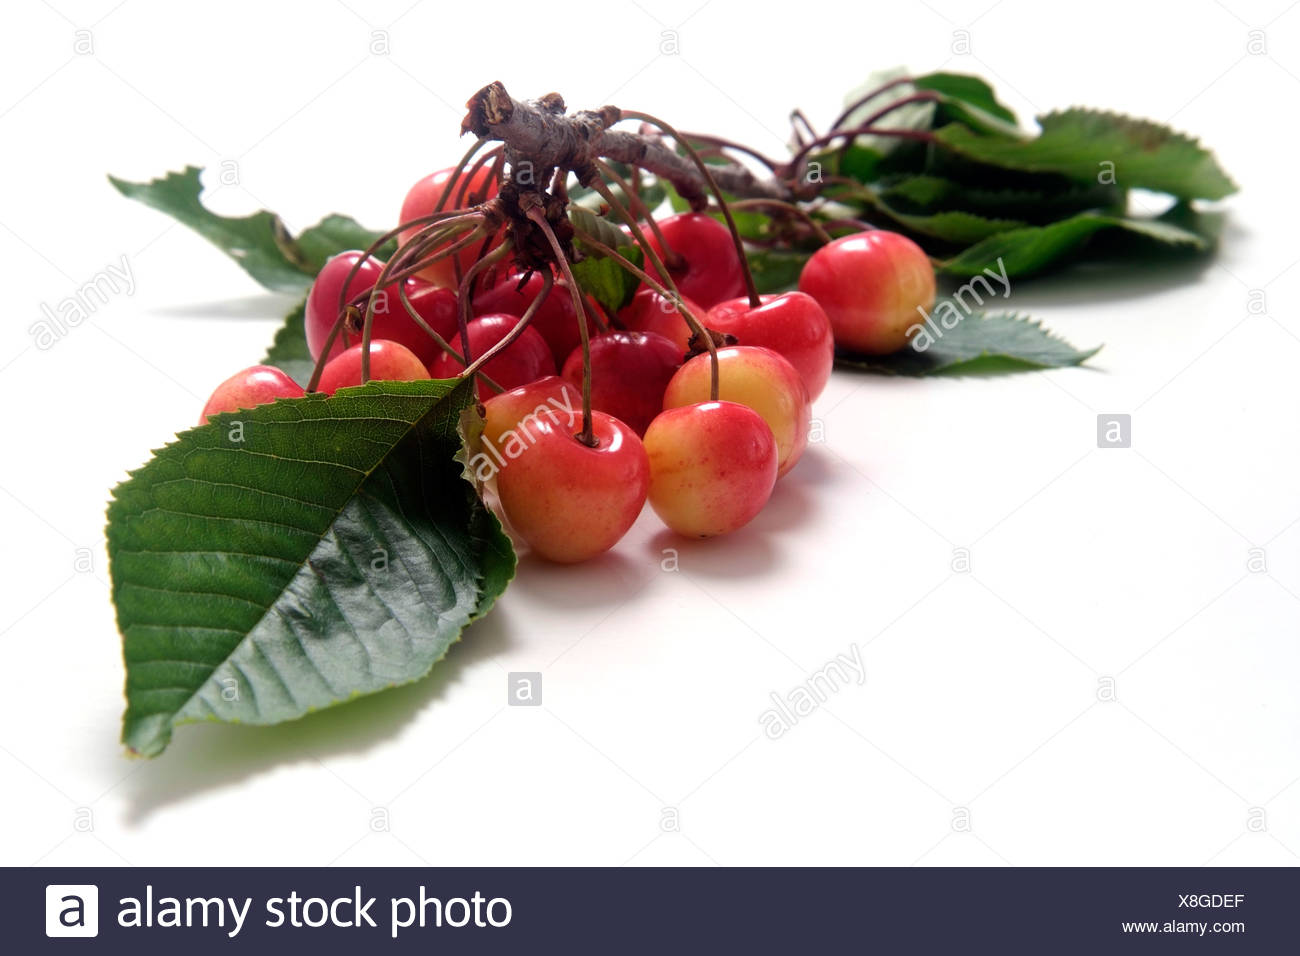 Cherry variety Altenburger Knorpelkirsche  with twig and leaves - Stock Image